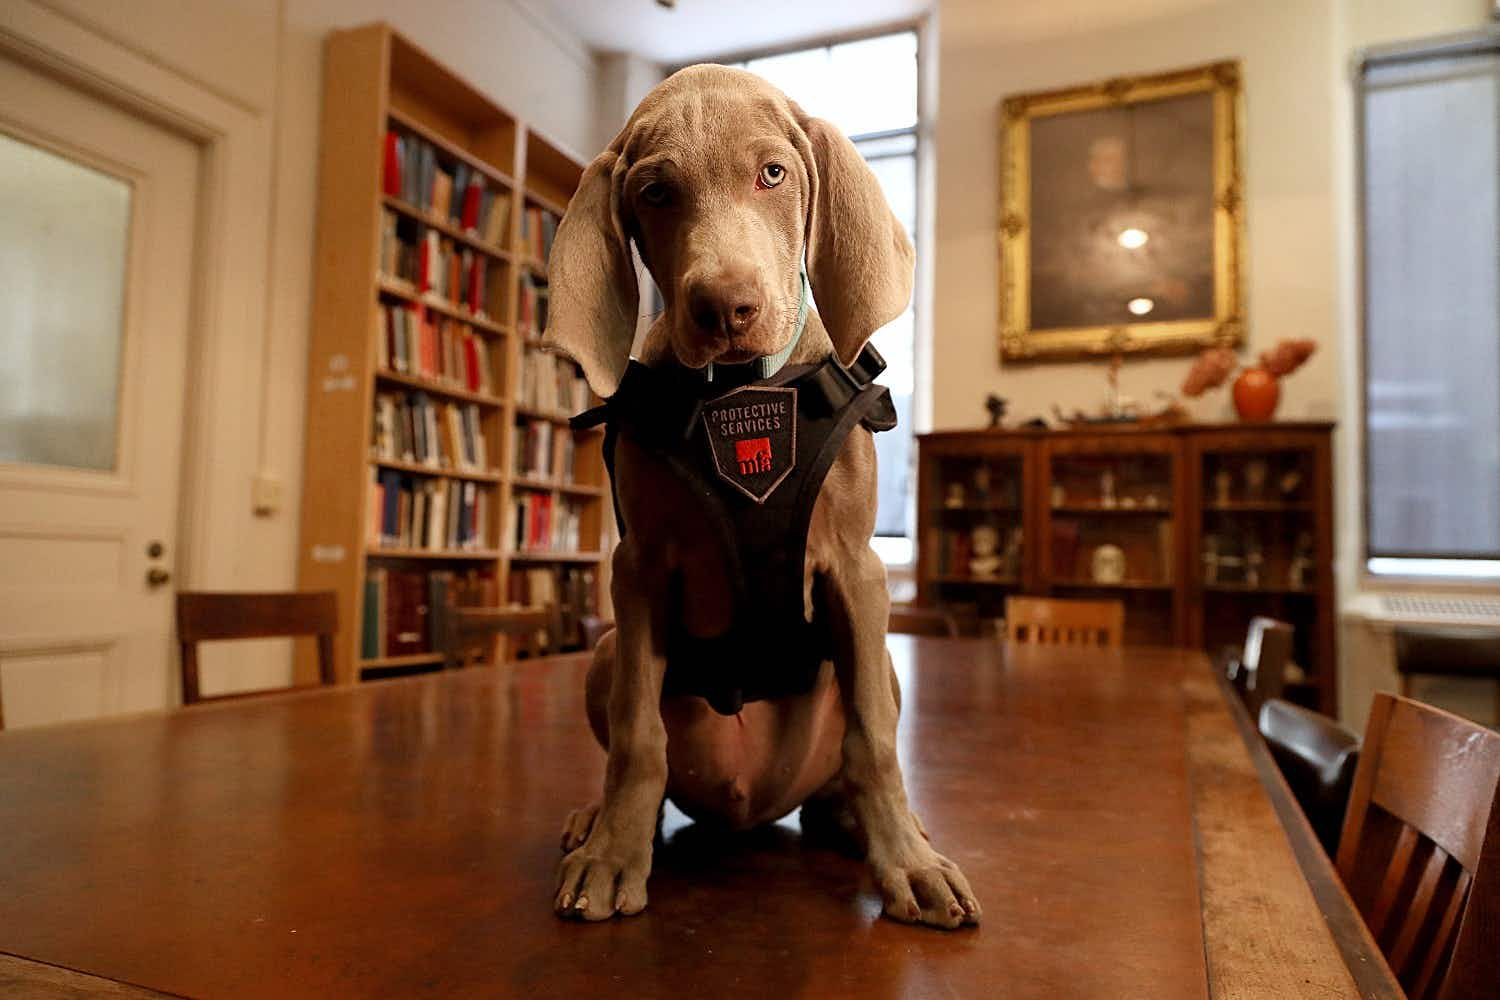 This adorable puppy has a very important job at Boston's Museum of Fine Arts